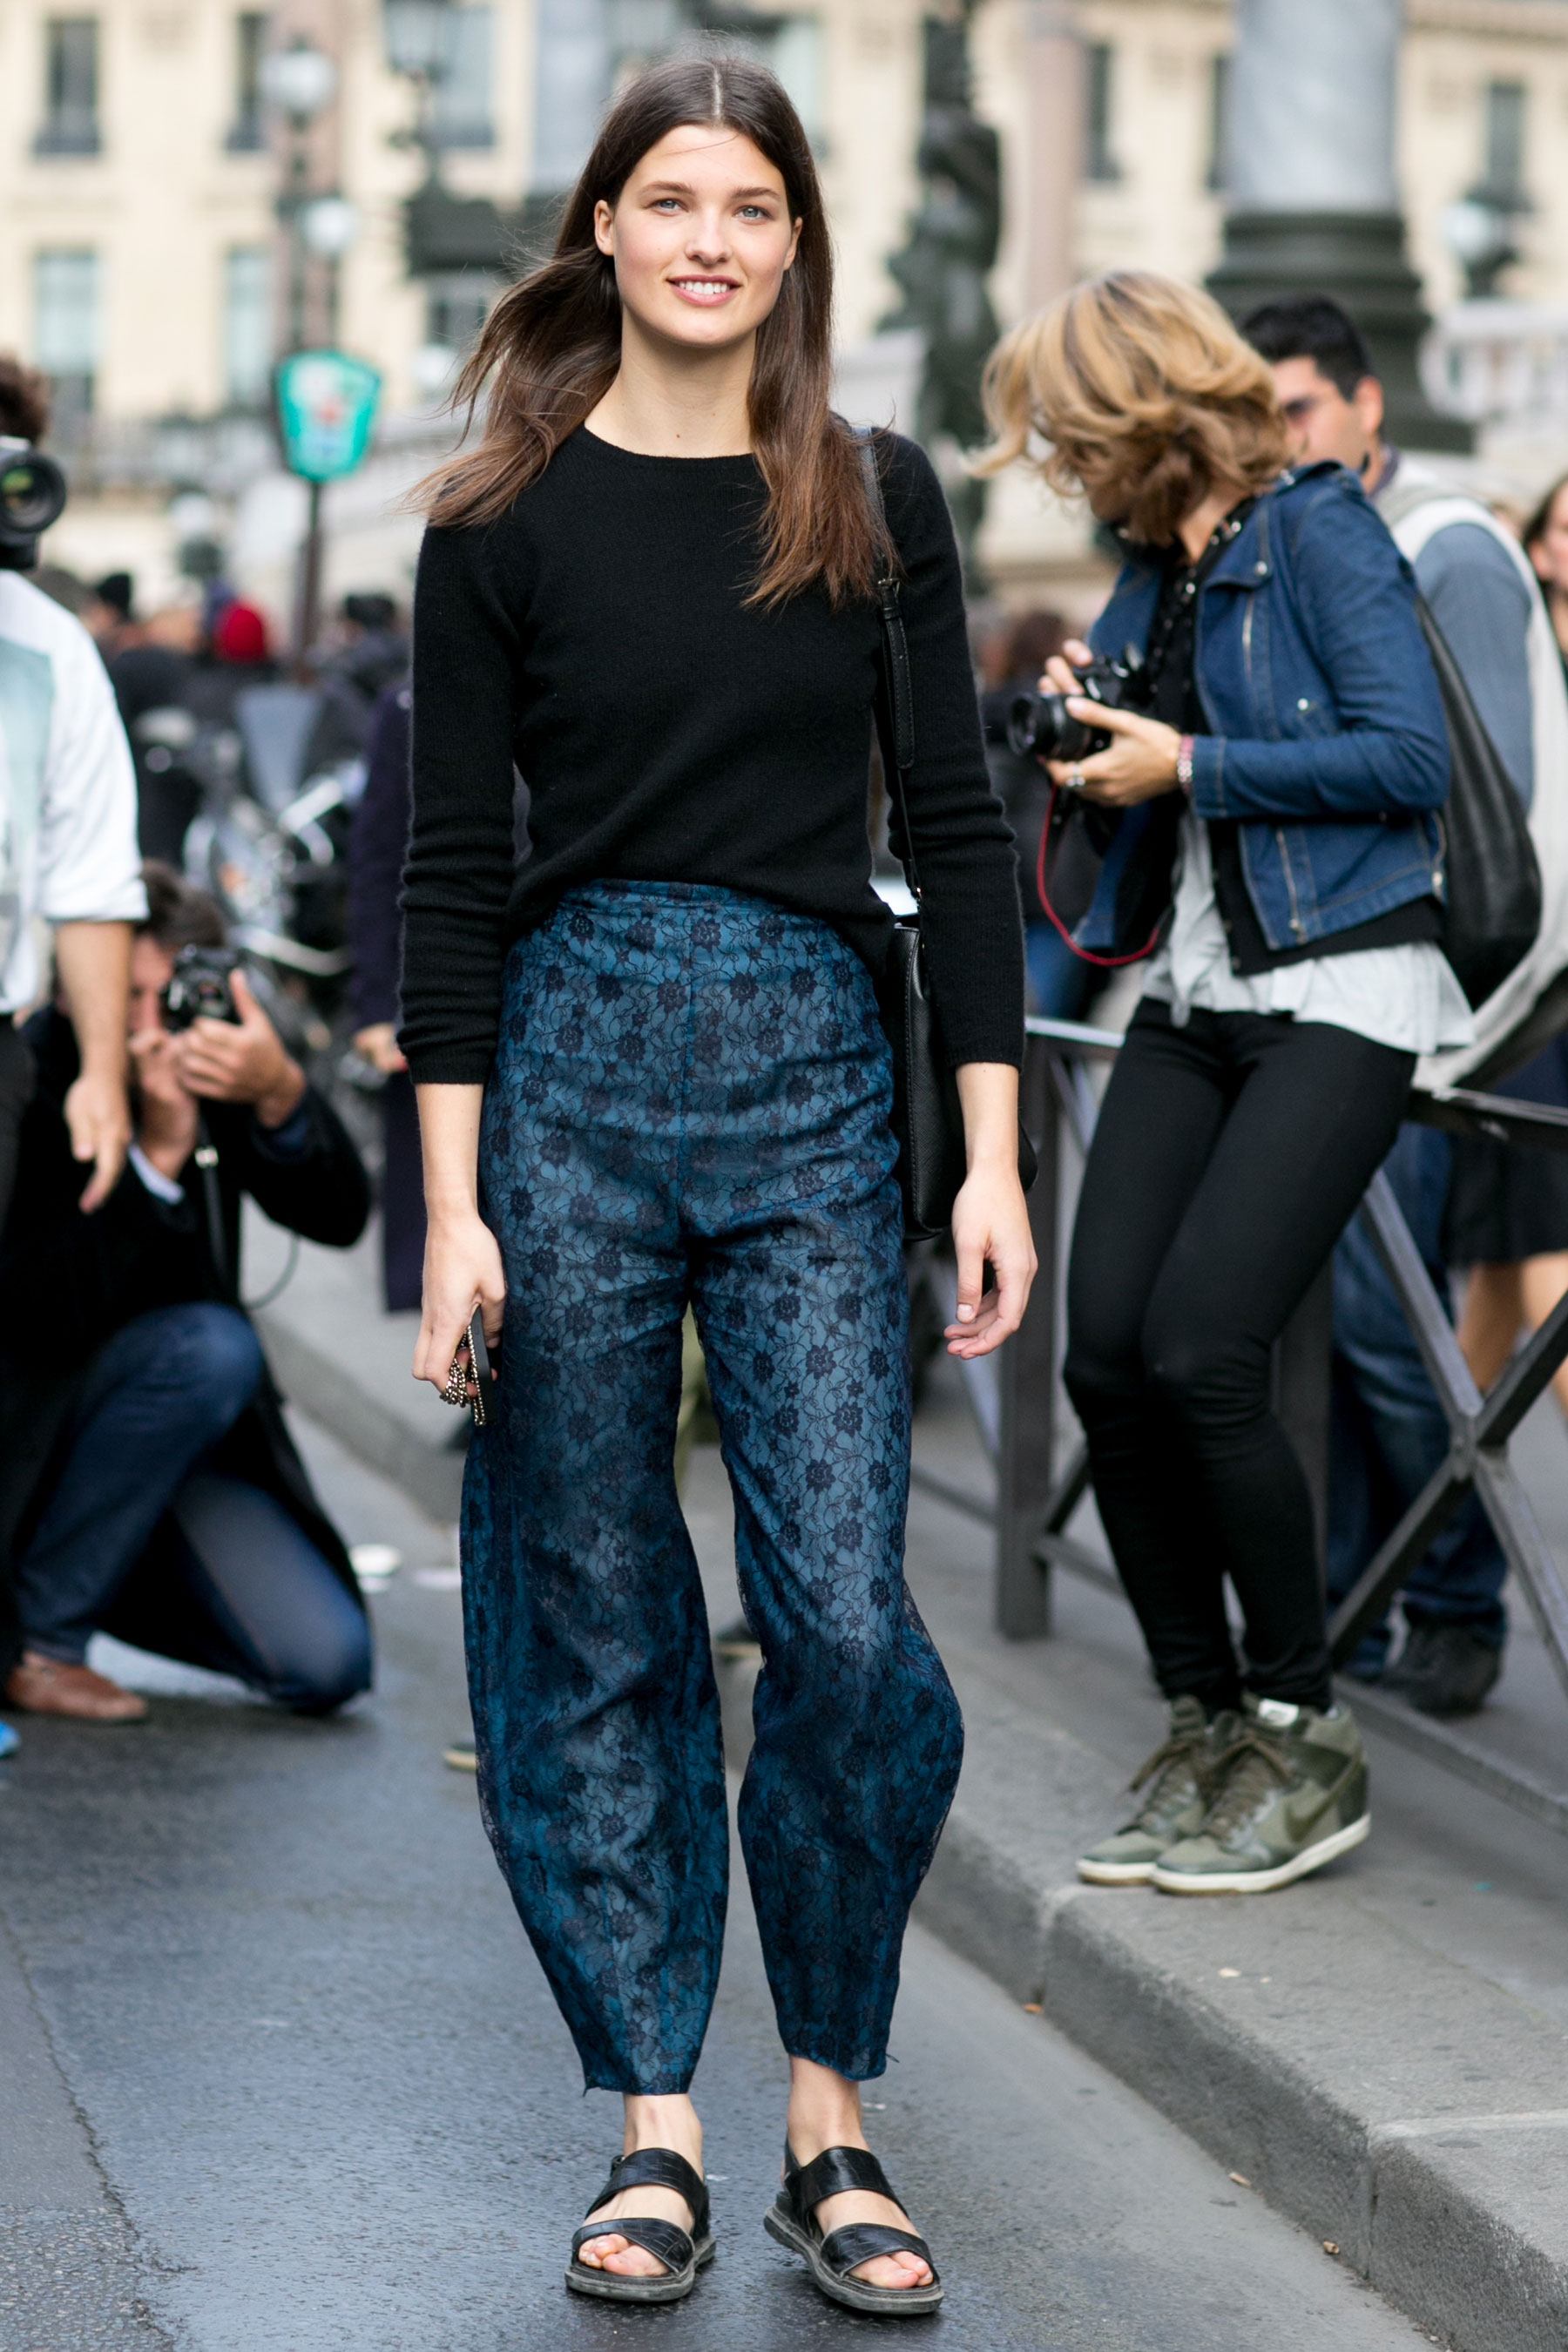 Paris-fashion-week-street-style-day-7-october-15-the-impression-08